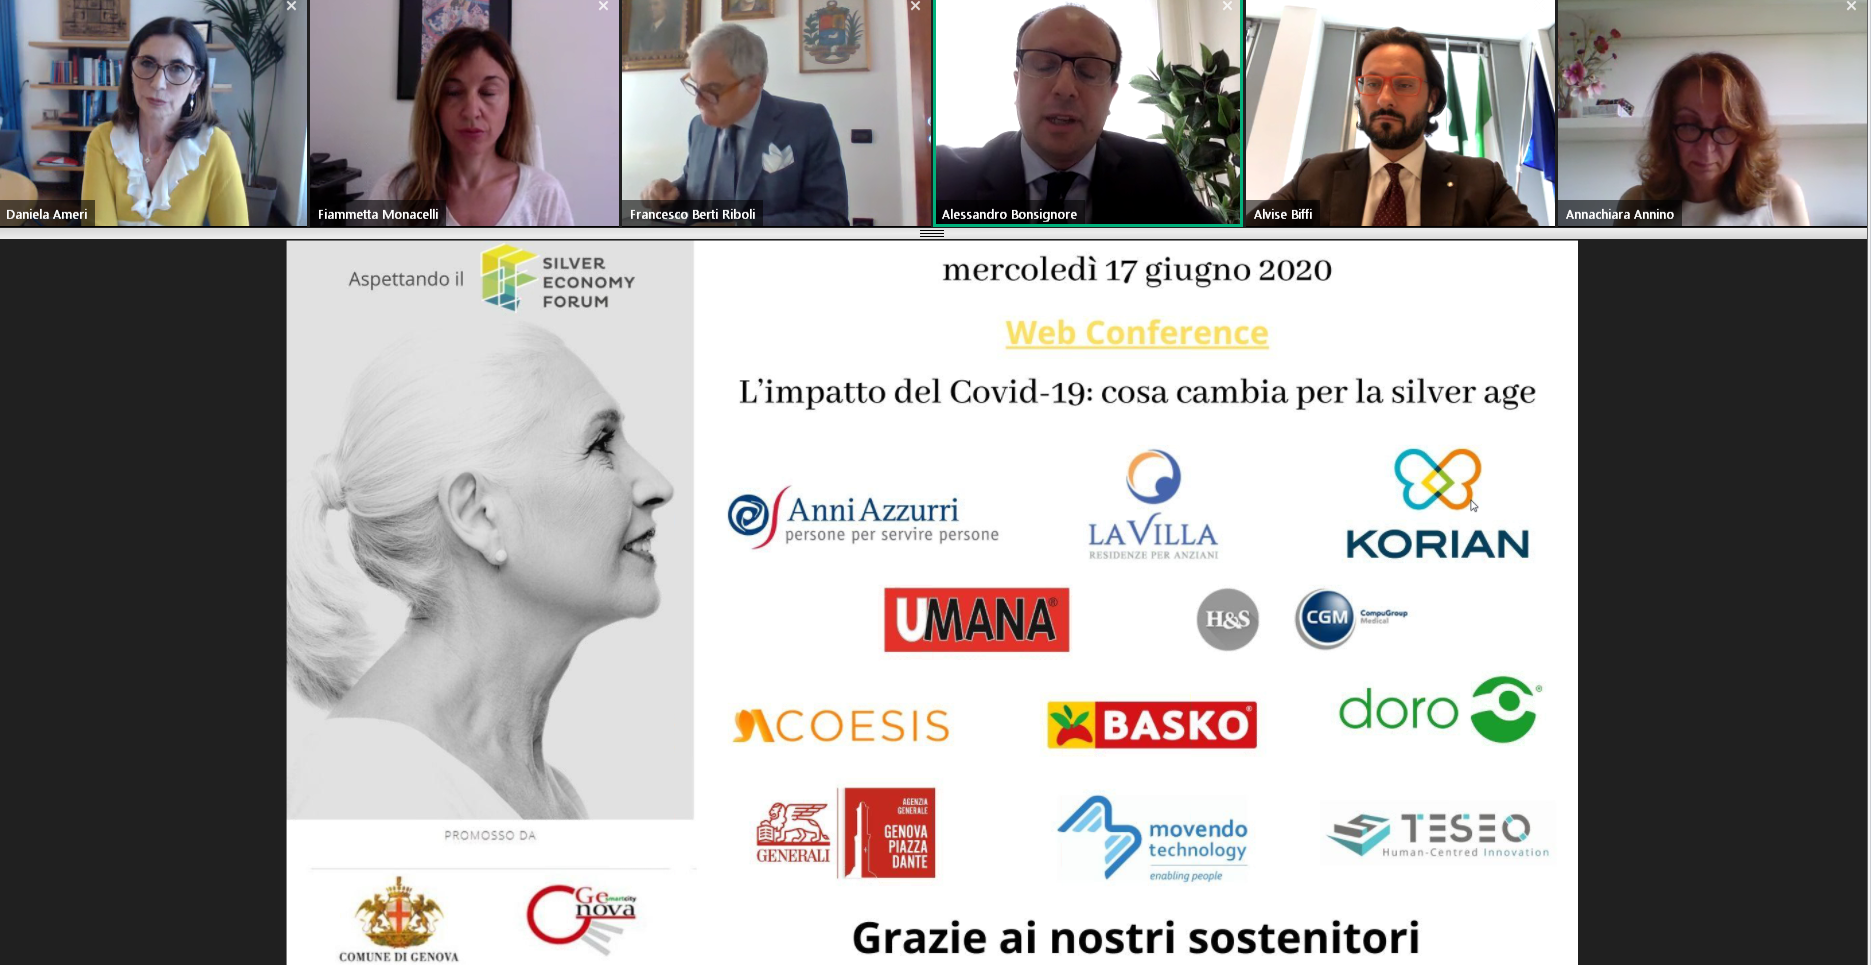 LATTANZIO Monitoring & Evaluation presents the results of the study on Silver and e-health